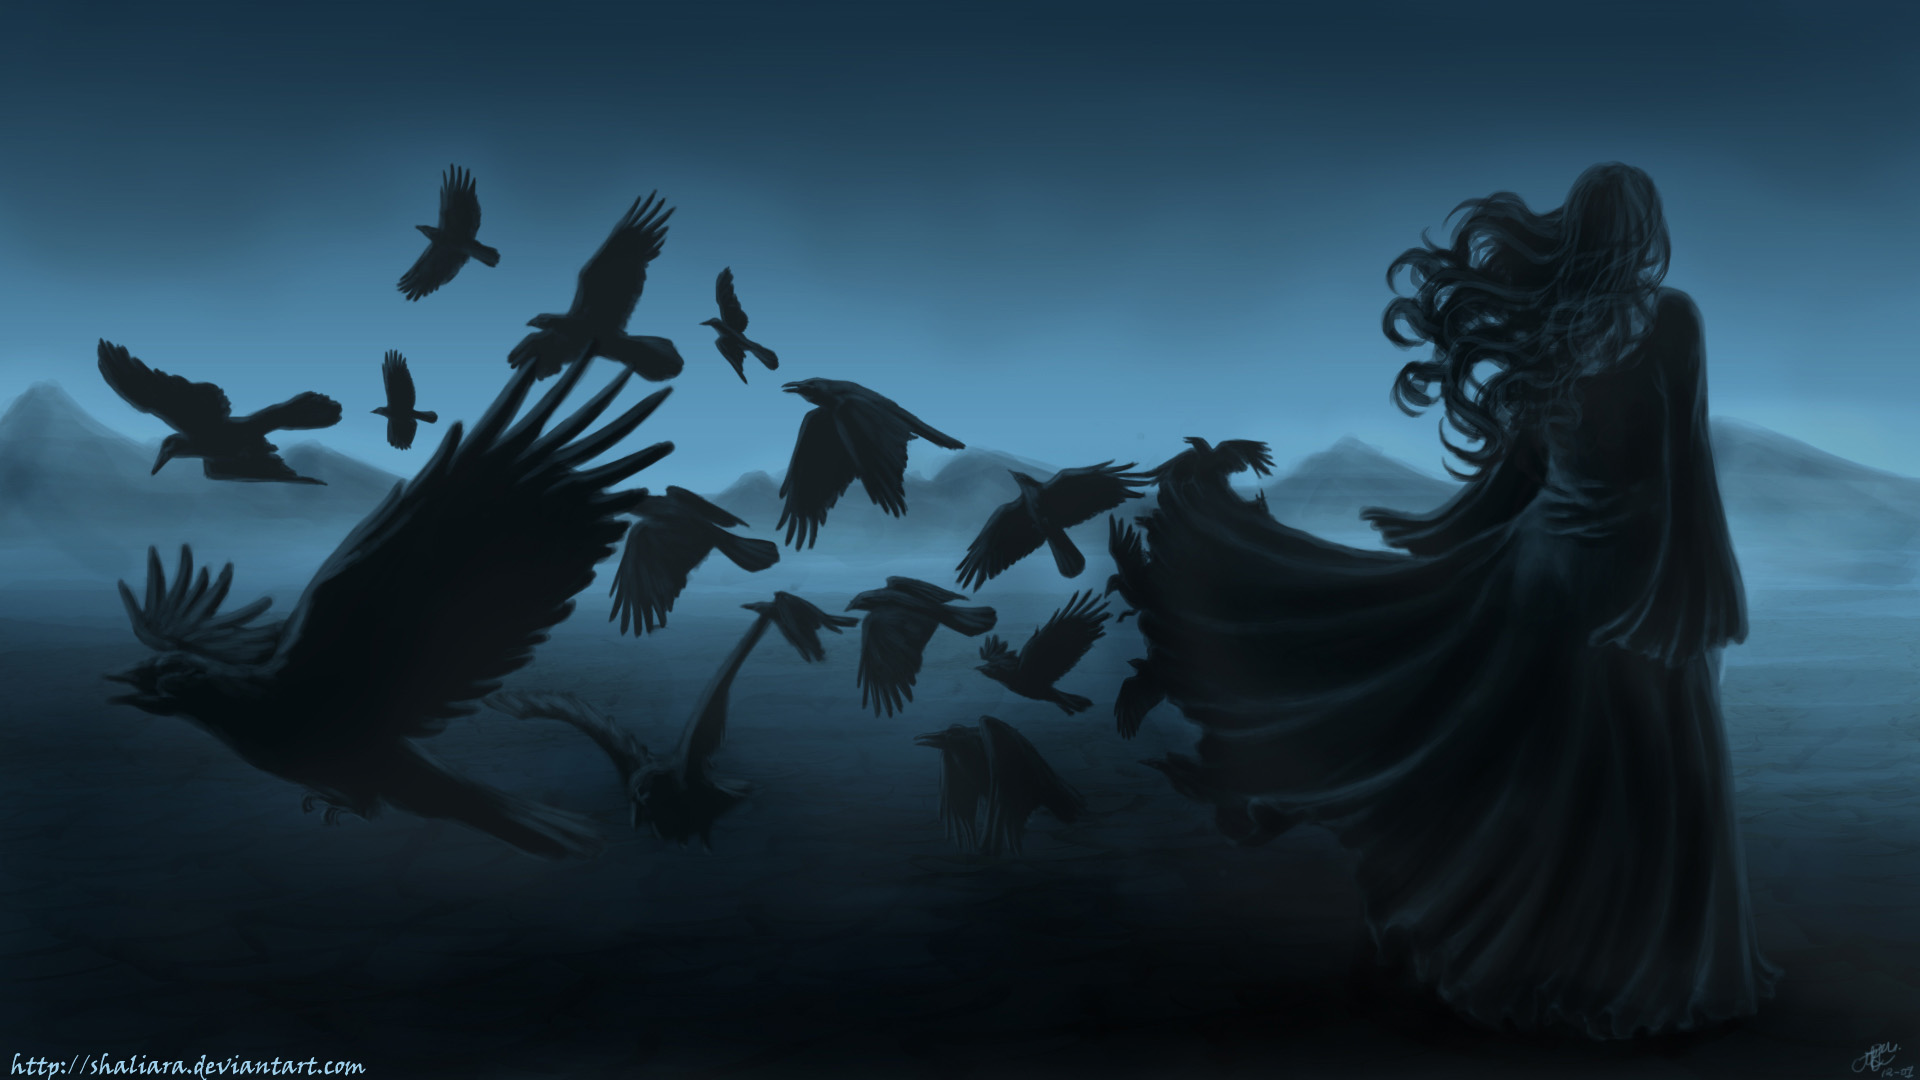 dark horror gothic women raven poe birds art mood wallpaper background 1920x1080